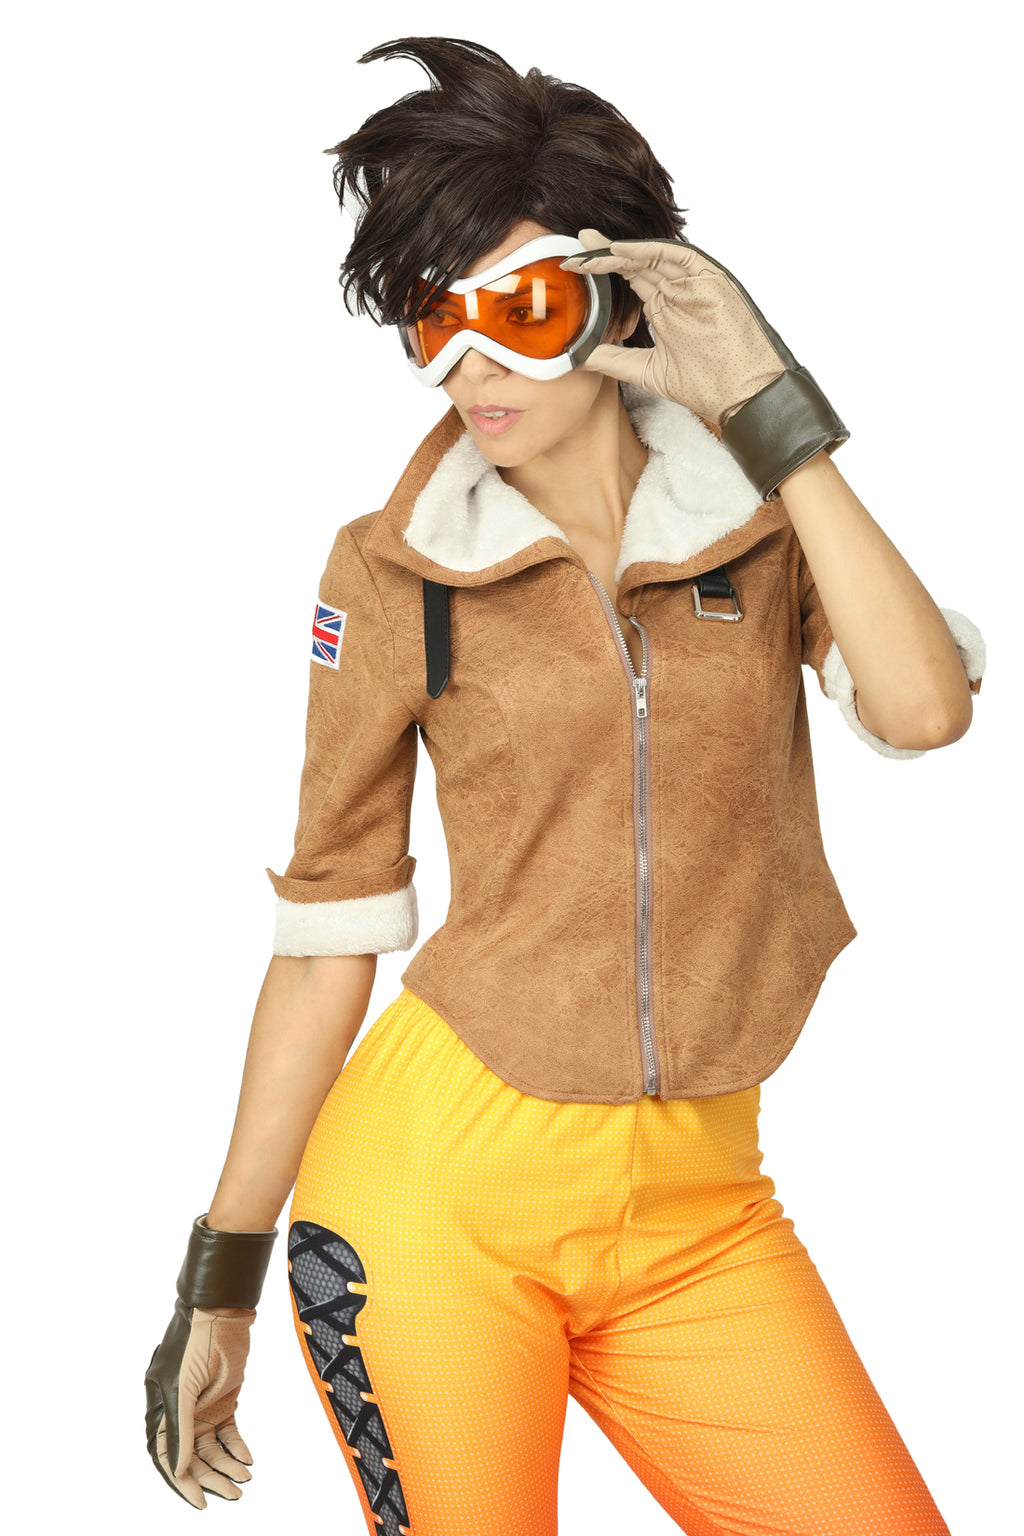 Women's Overwatch Tracer Lena Oxton Cosplay Halloween Game Costume Jacket